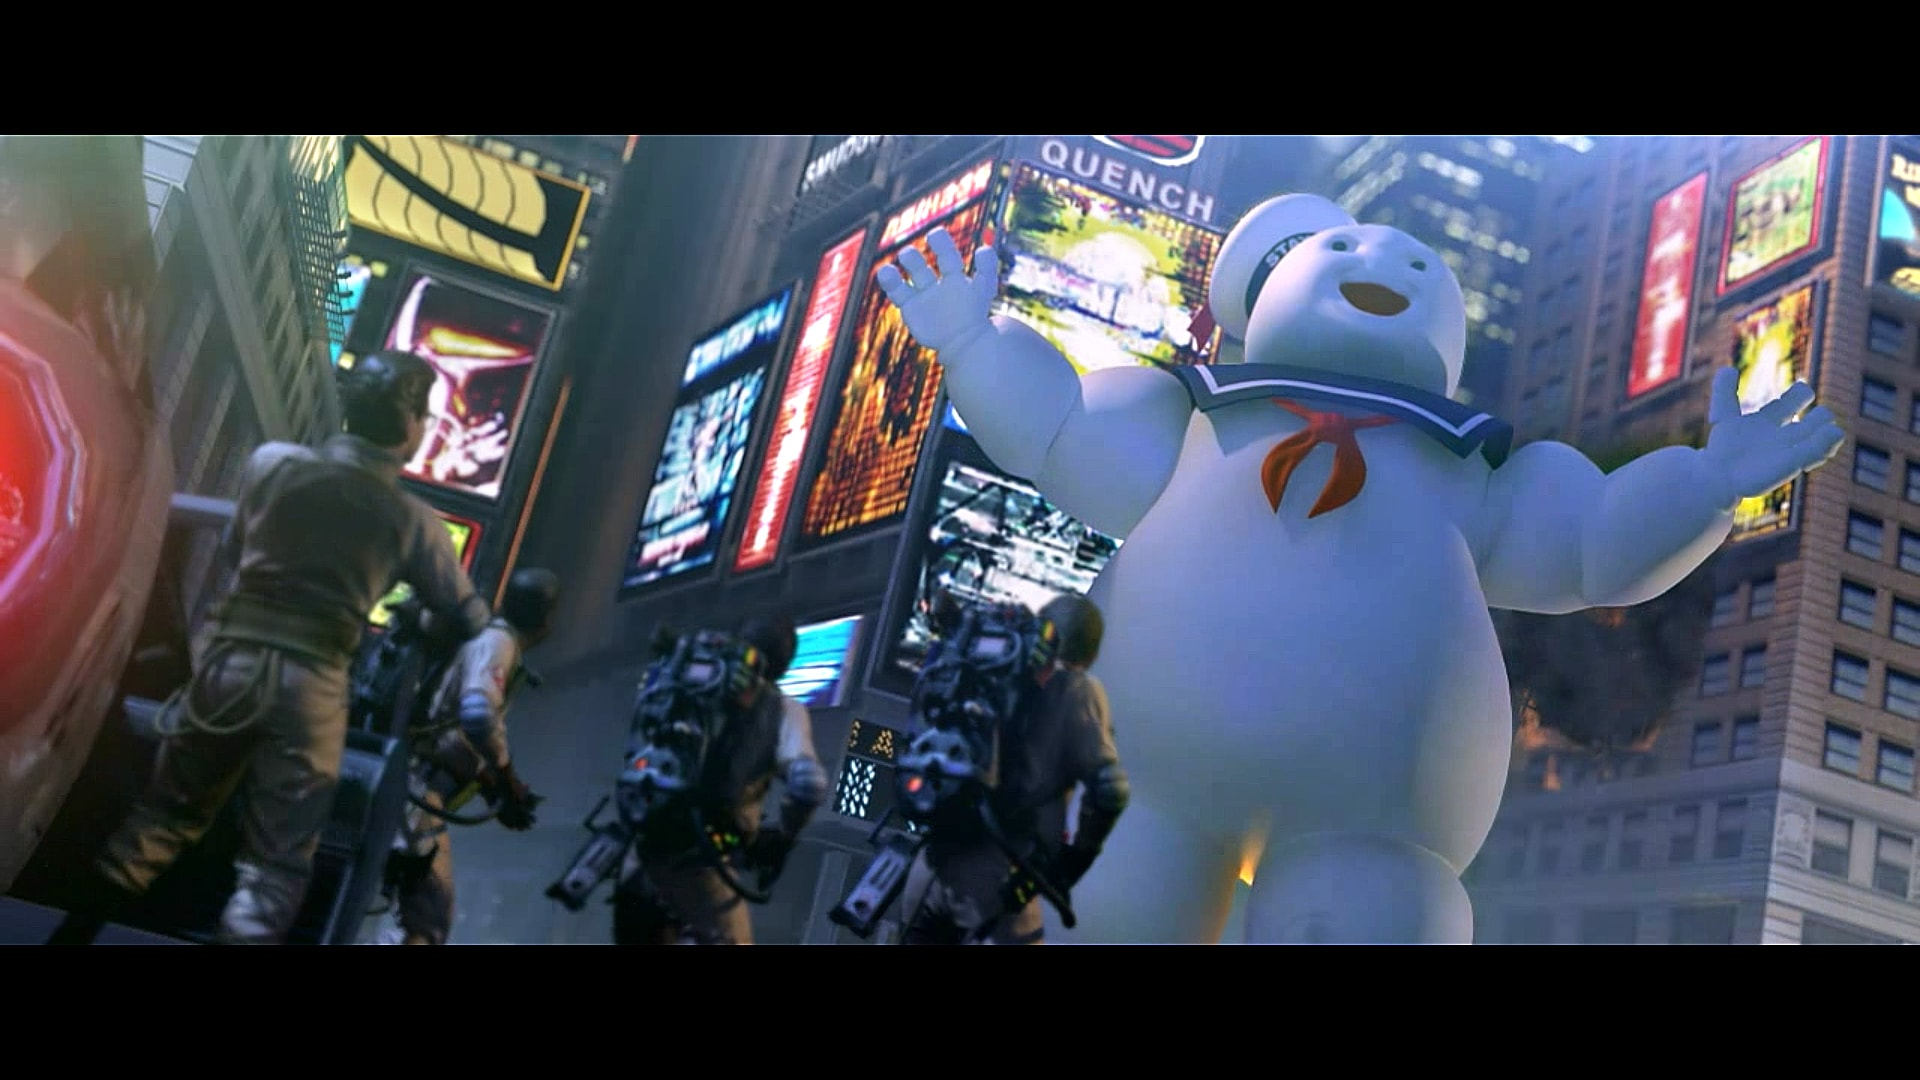 Ghostbusters: The Video Game - Remastered - screenshot 3